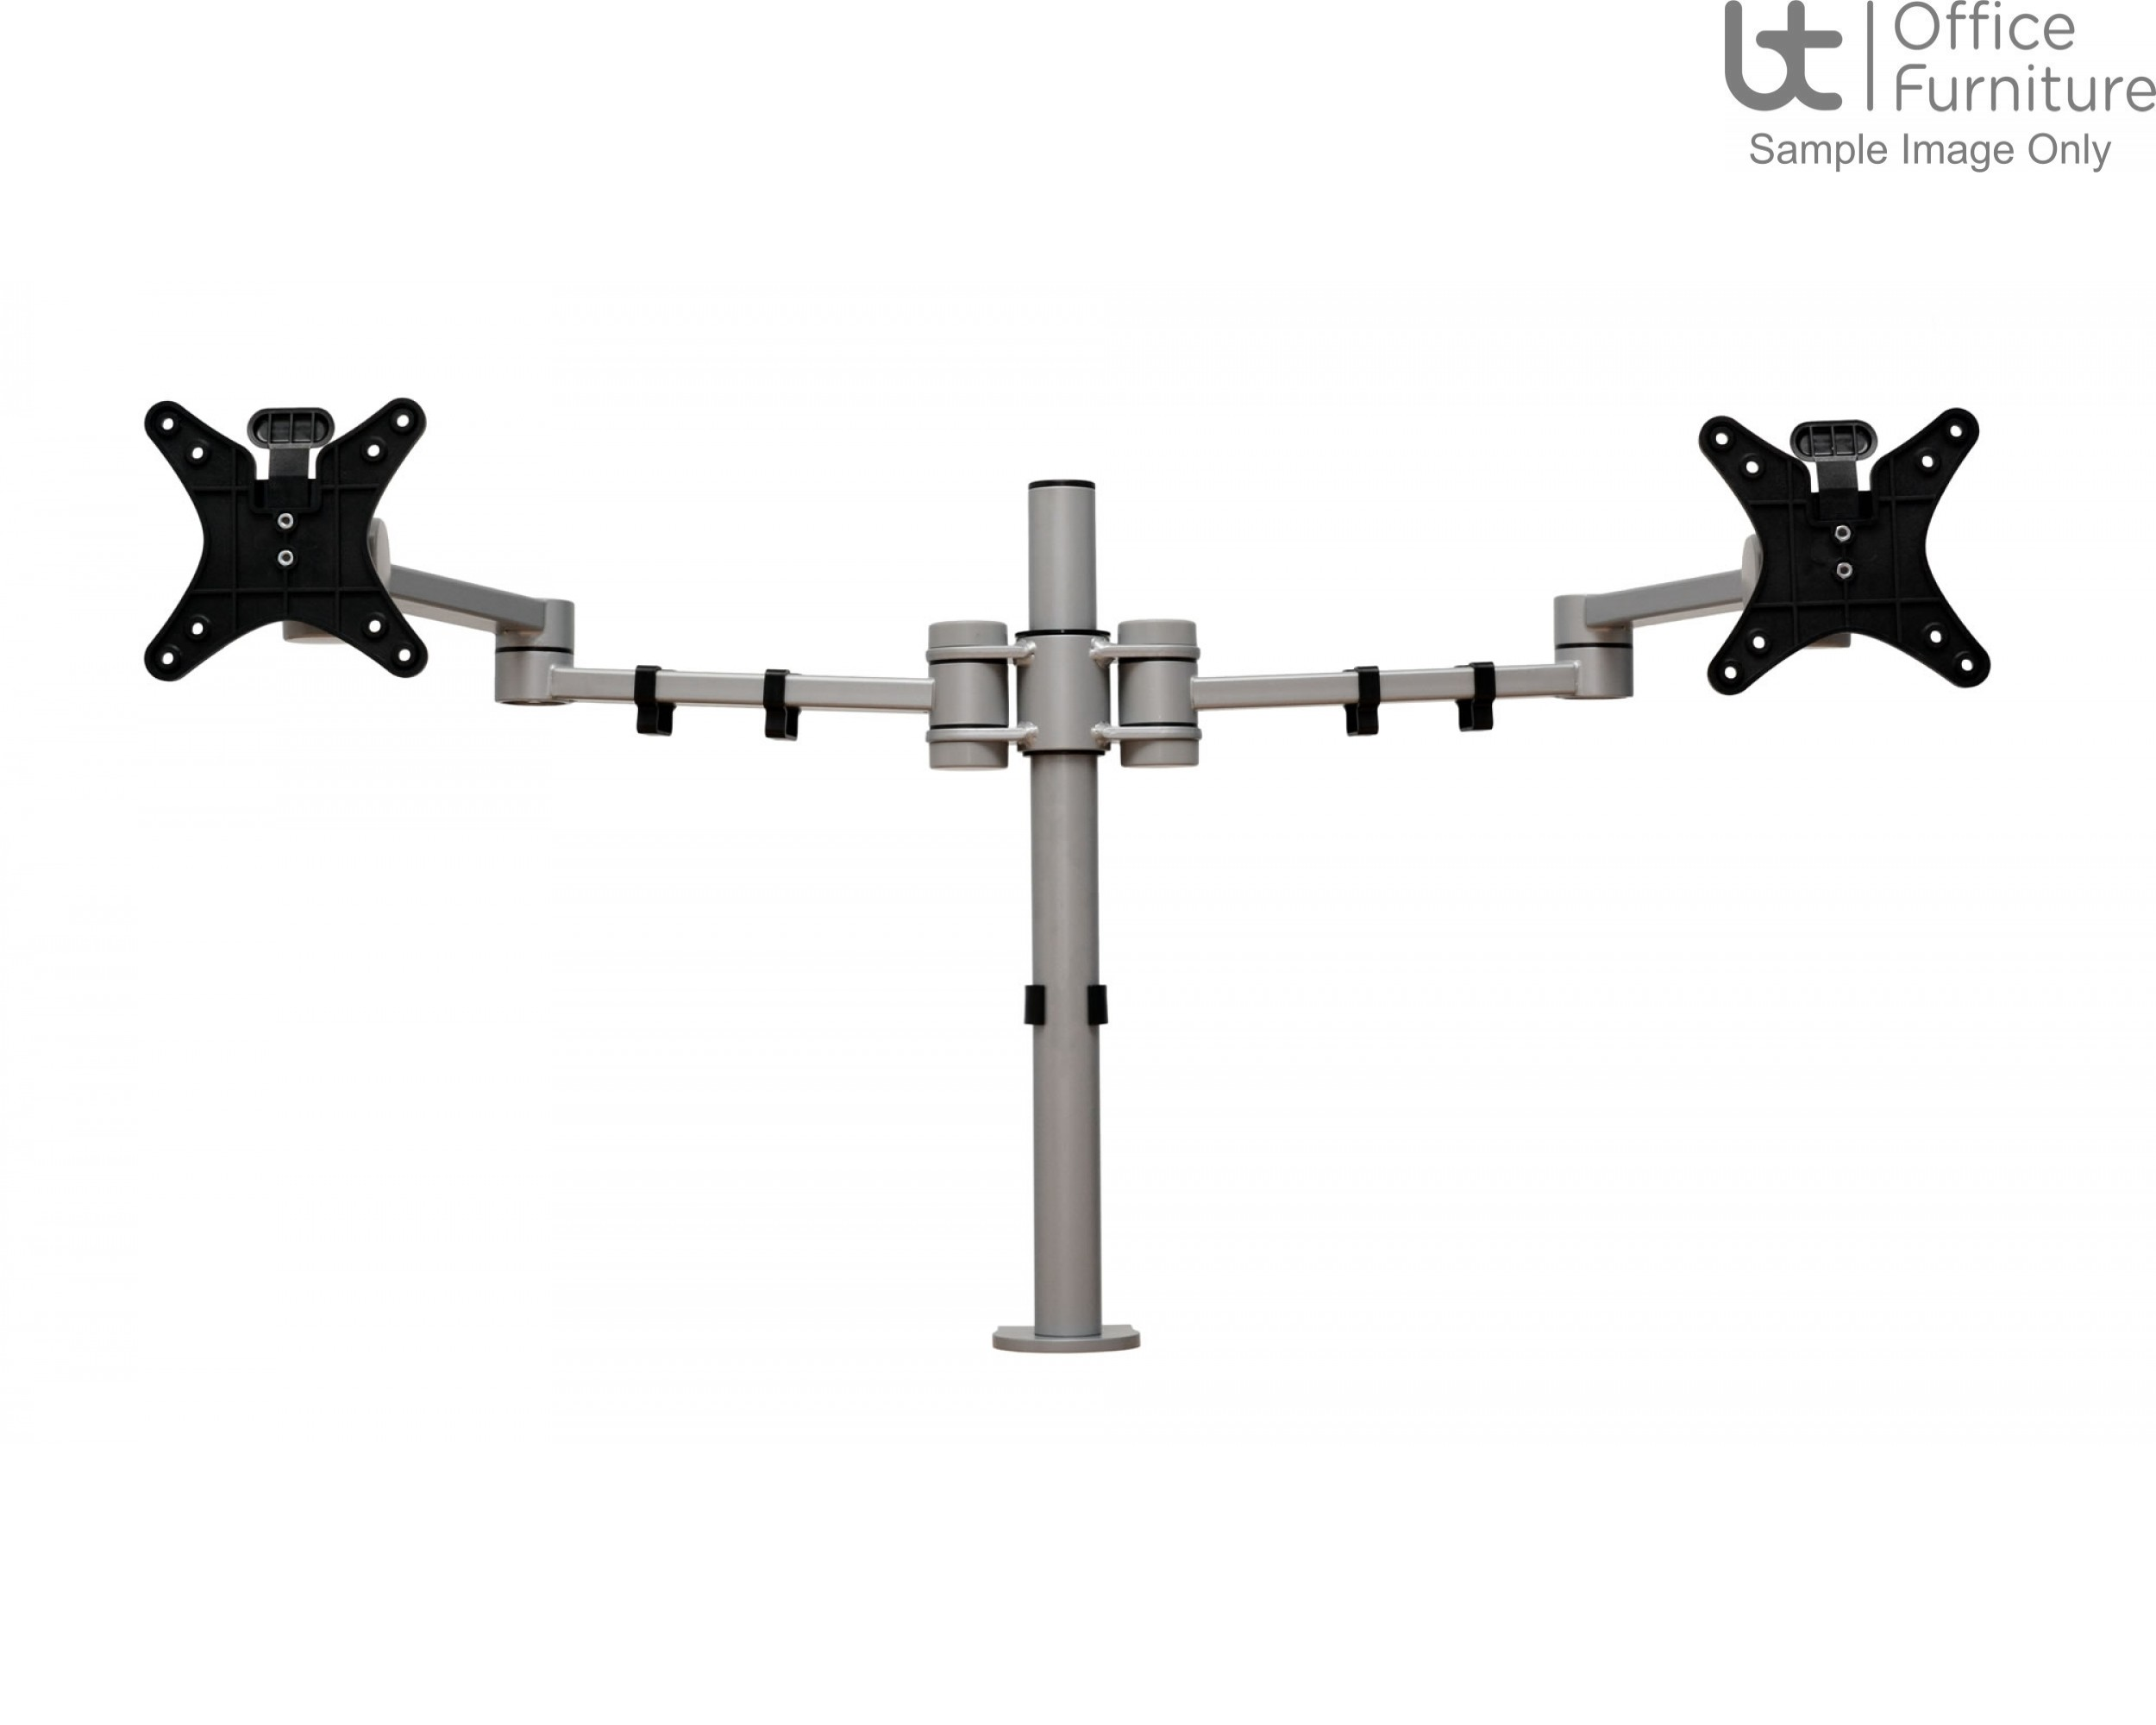 Vision S double pole monitor arm with C clamp, bolt through & grommet mount fixing kit with Quick Release VESA Plate